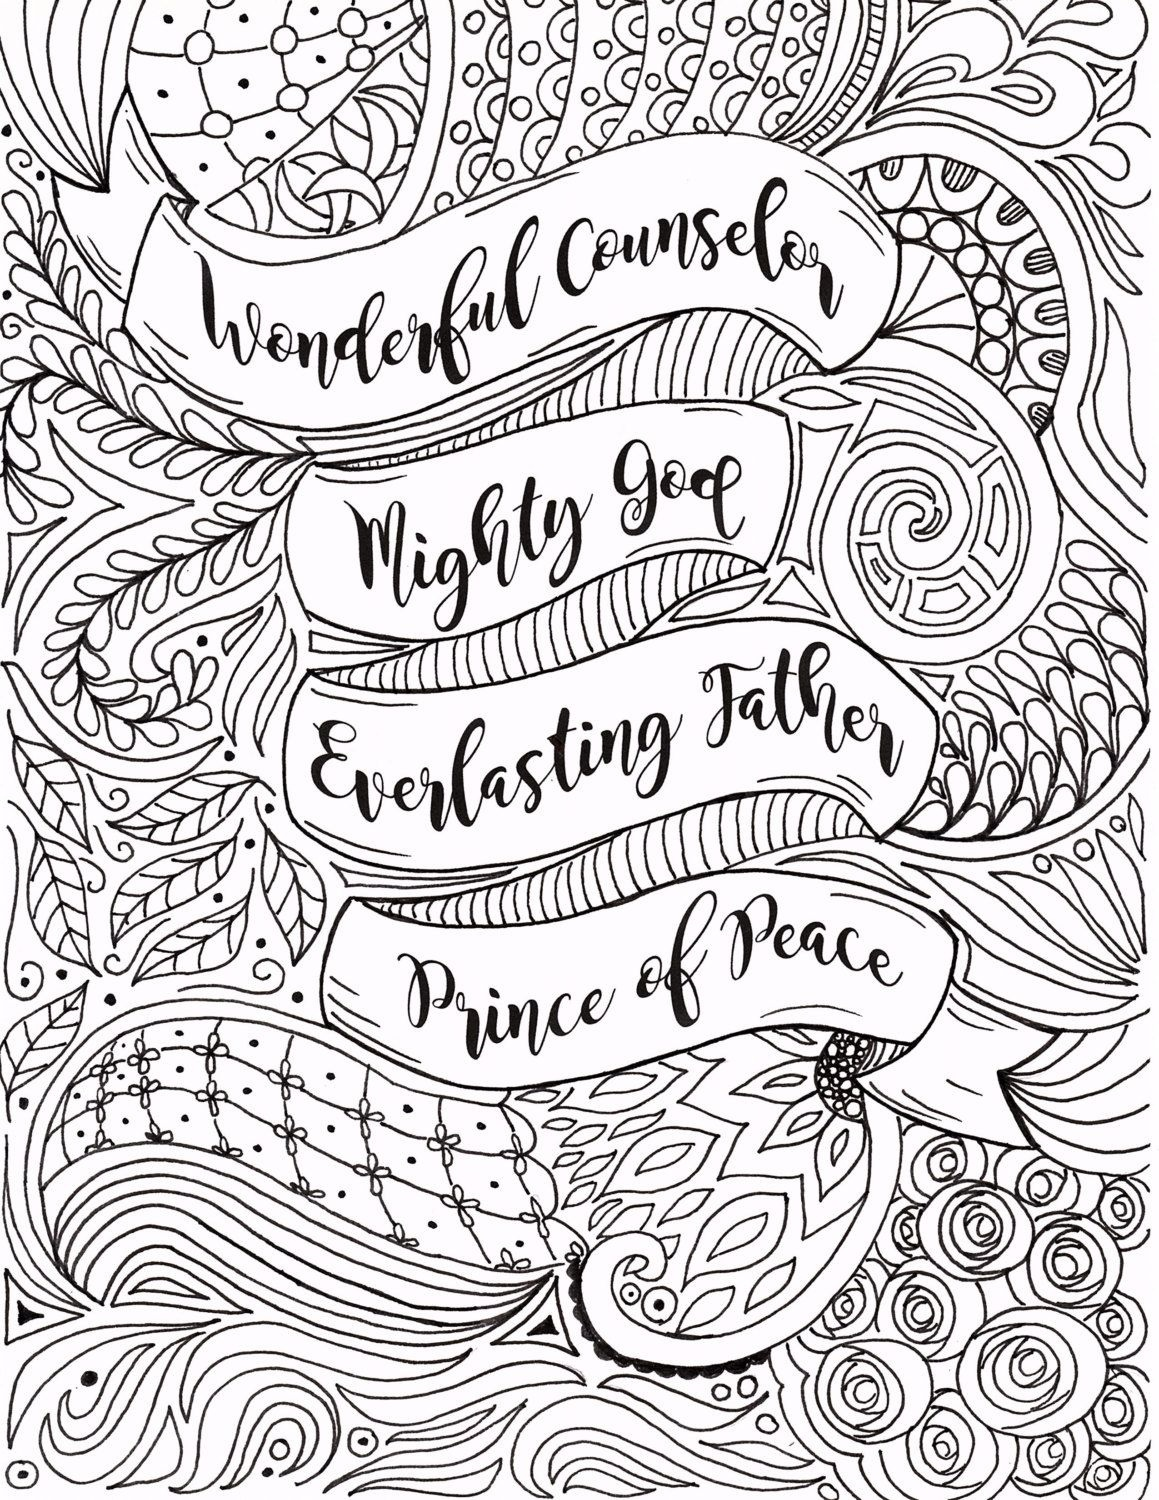 Adult Christmas Coloring Page Christianfourthavepenandink - Free Printable Bible Christmas Coloring Pages